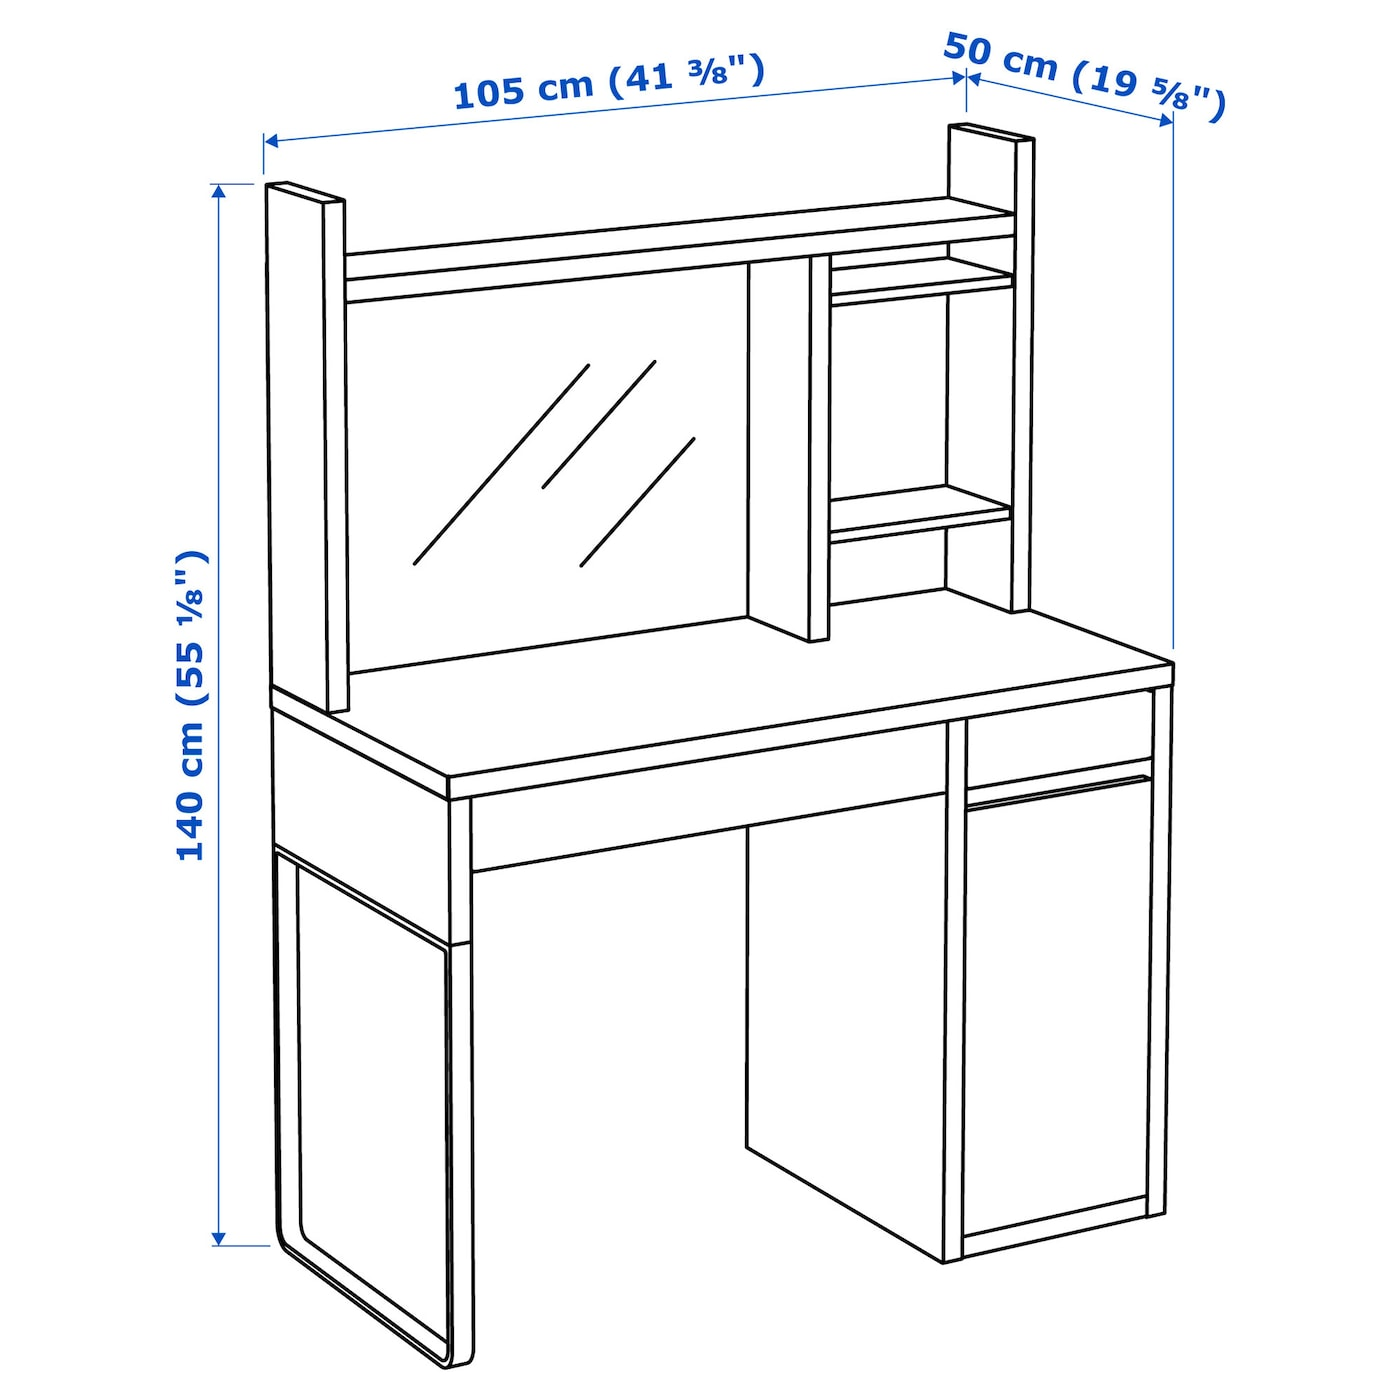 IKEA MICKE workstation Drawer stops prevent the drawers from being pulled out too far.